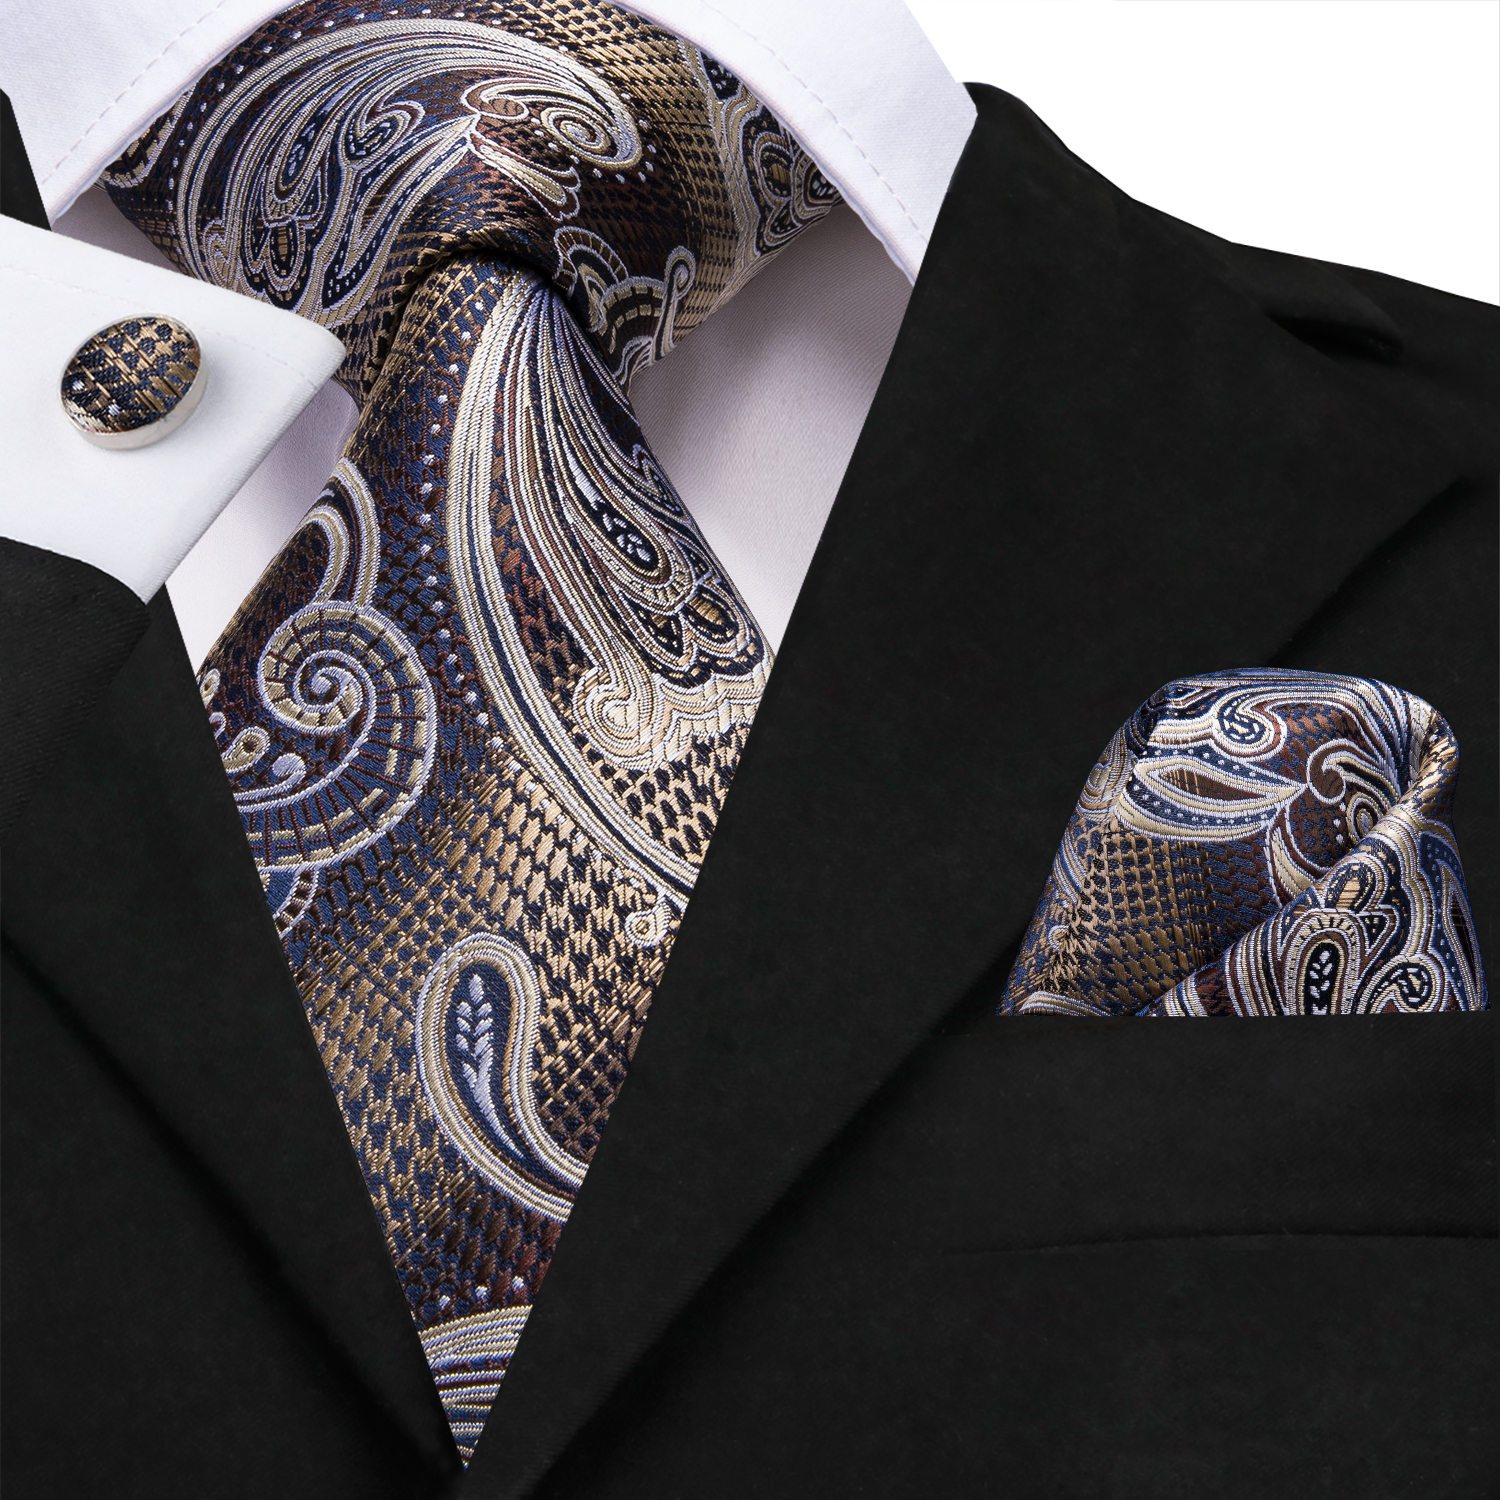 SN-3212 Men Tie For Men Necktie Paisley Silk Tie Cufflinks Set Jacquard Brown Formal Men's Tie For Wedding Party Business Hi-Tie